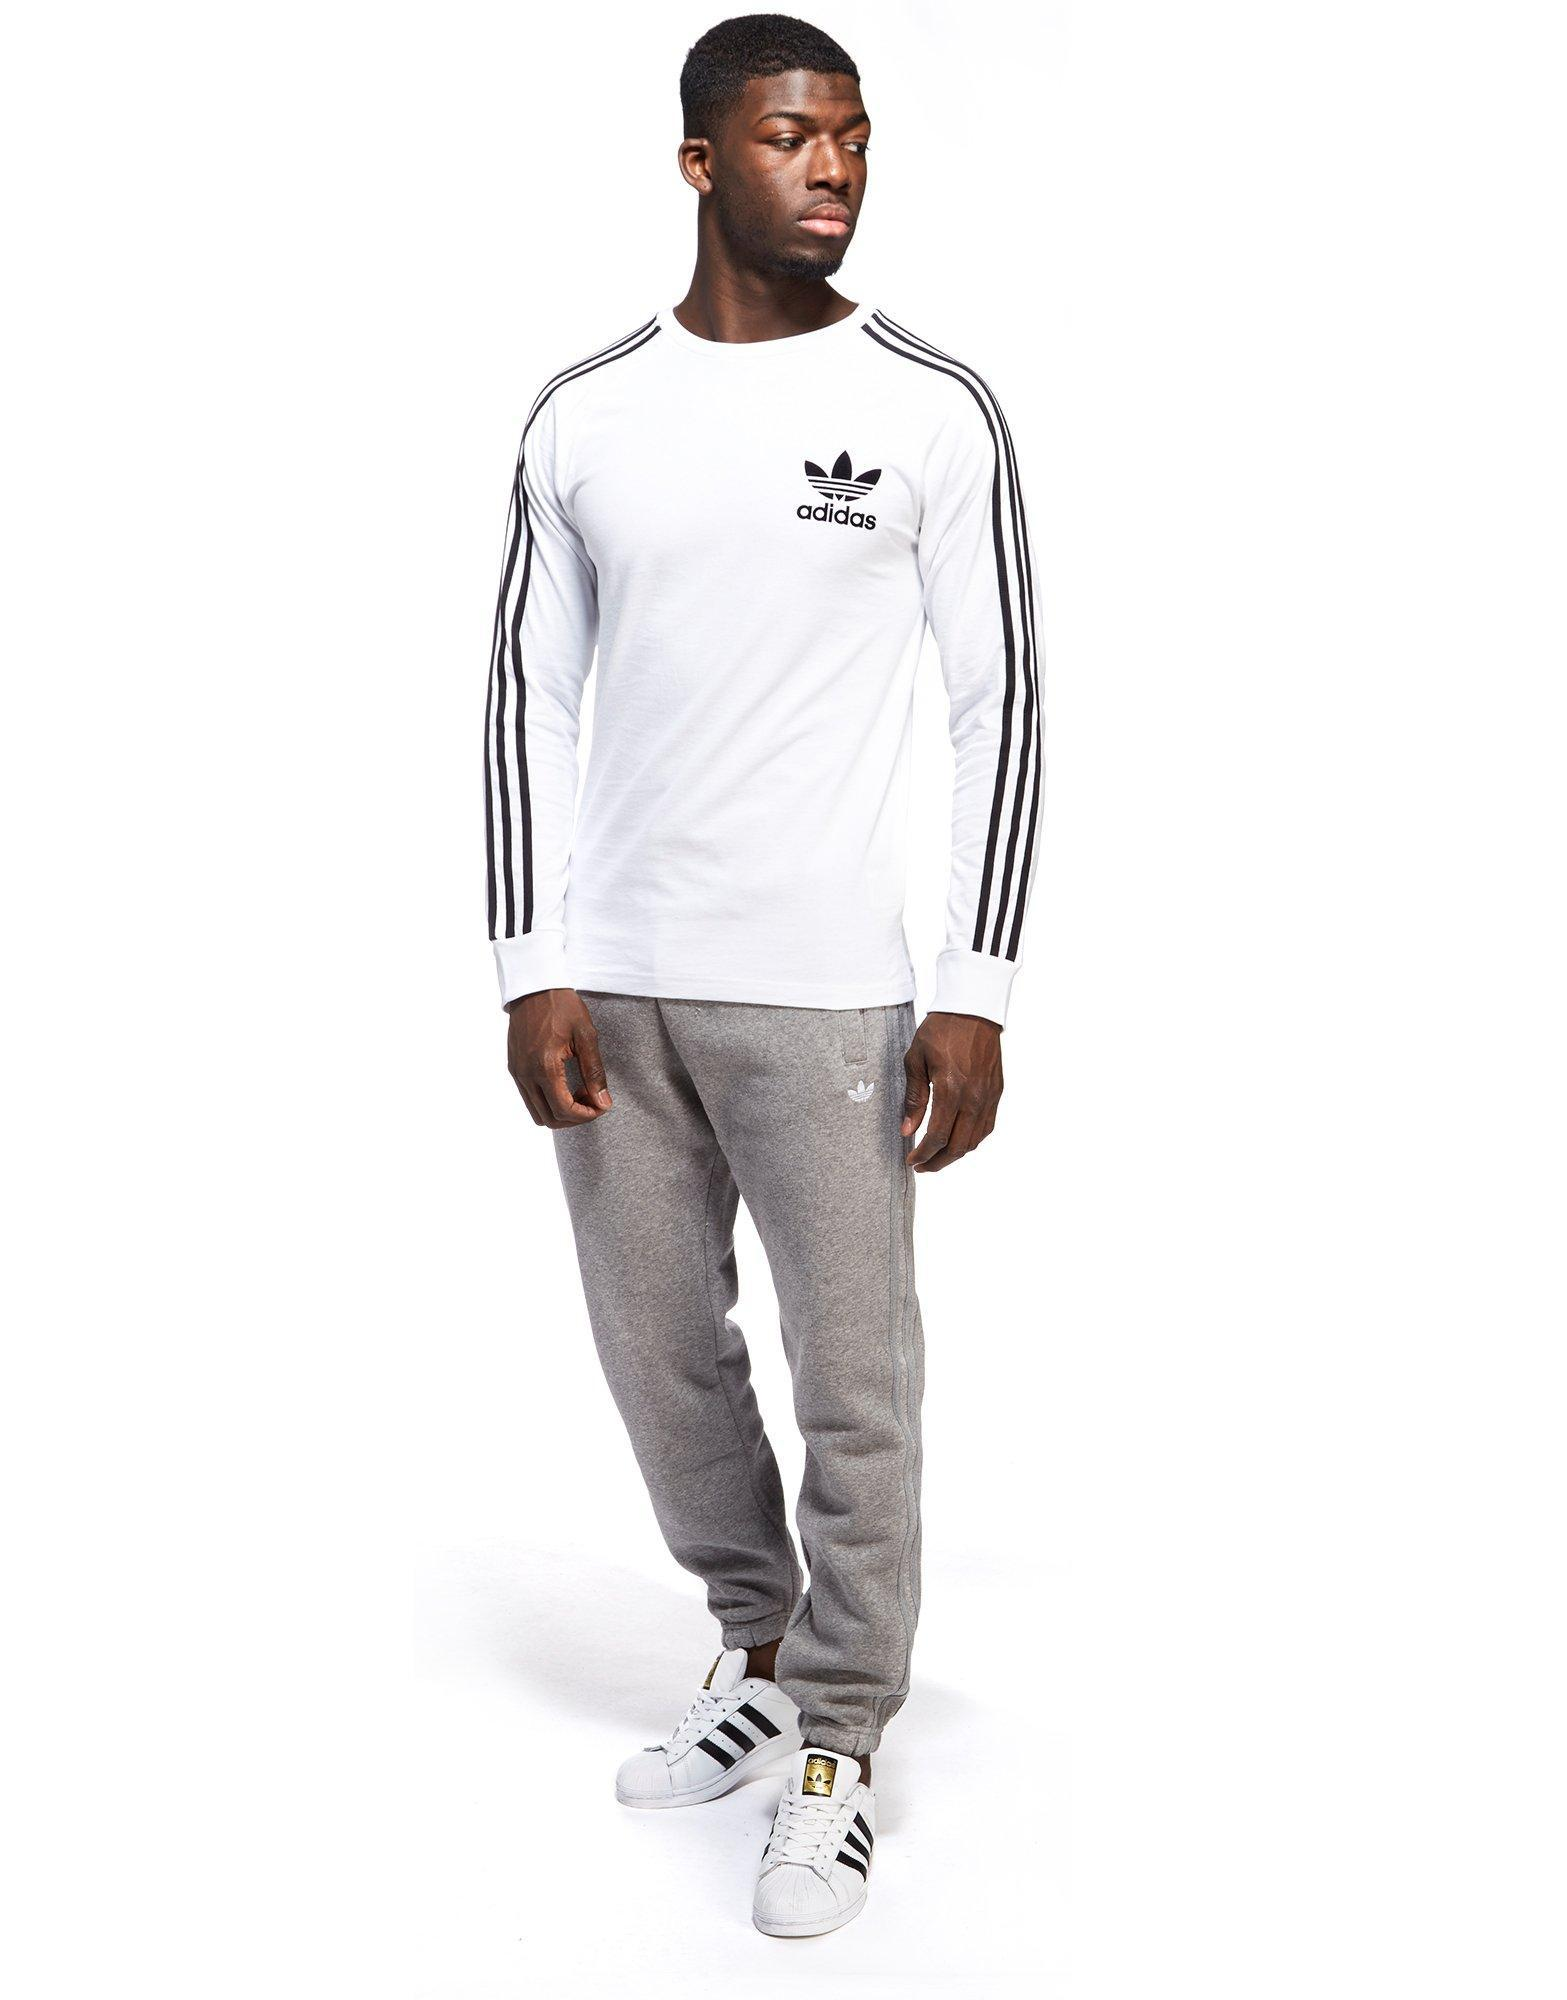 6c09373a1 adidas Originals California Long Sleeve T-shirt in White for Men - Lyst